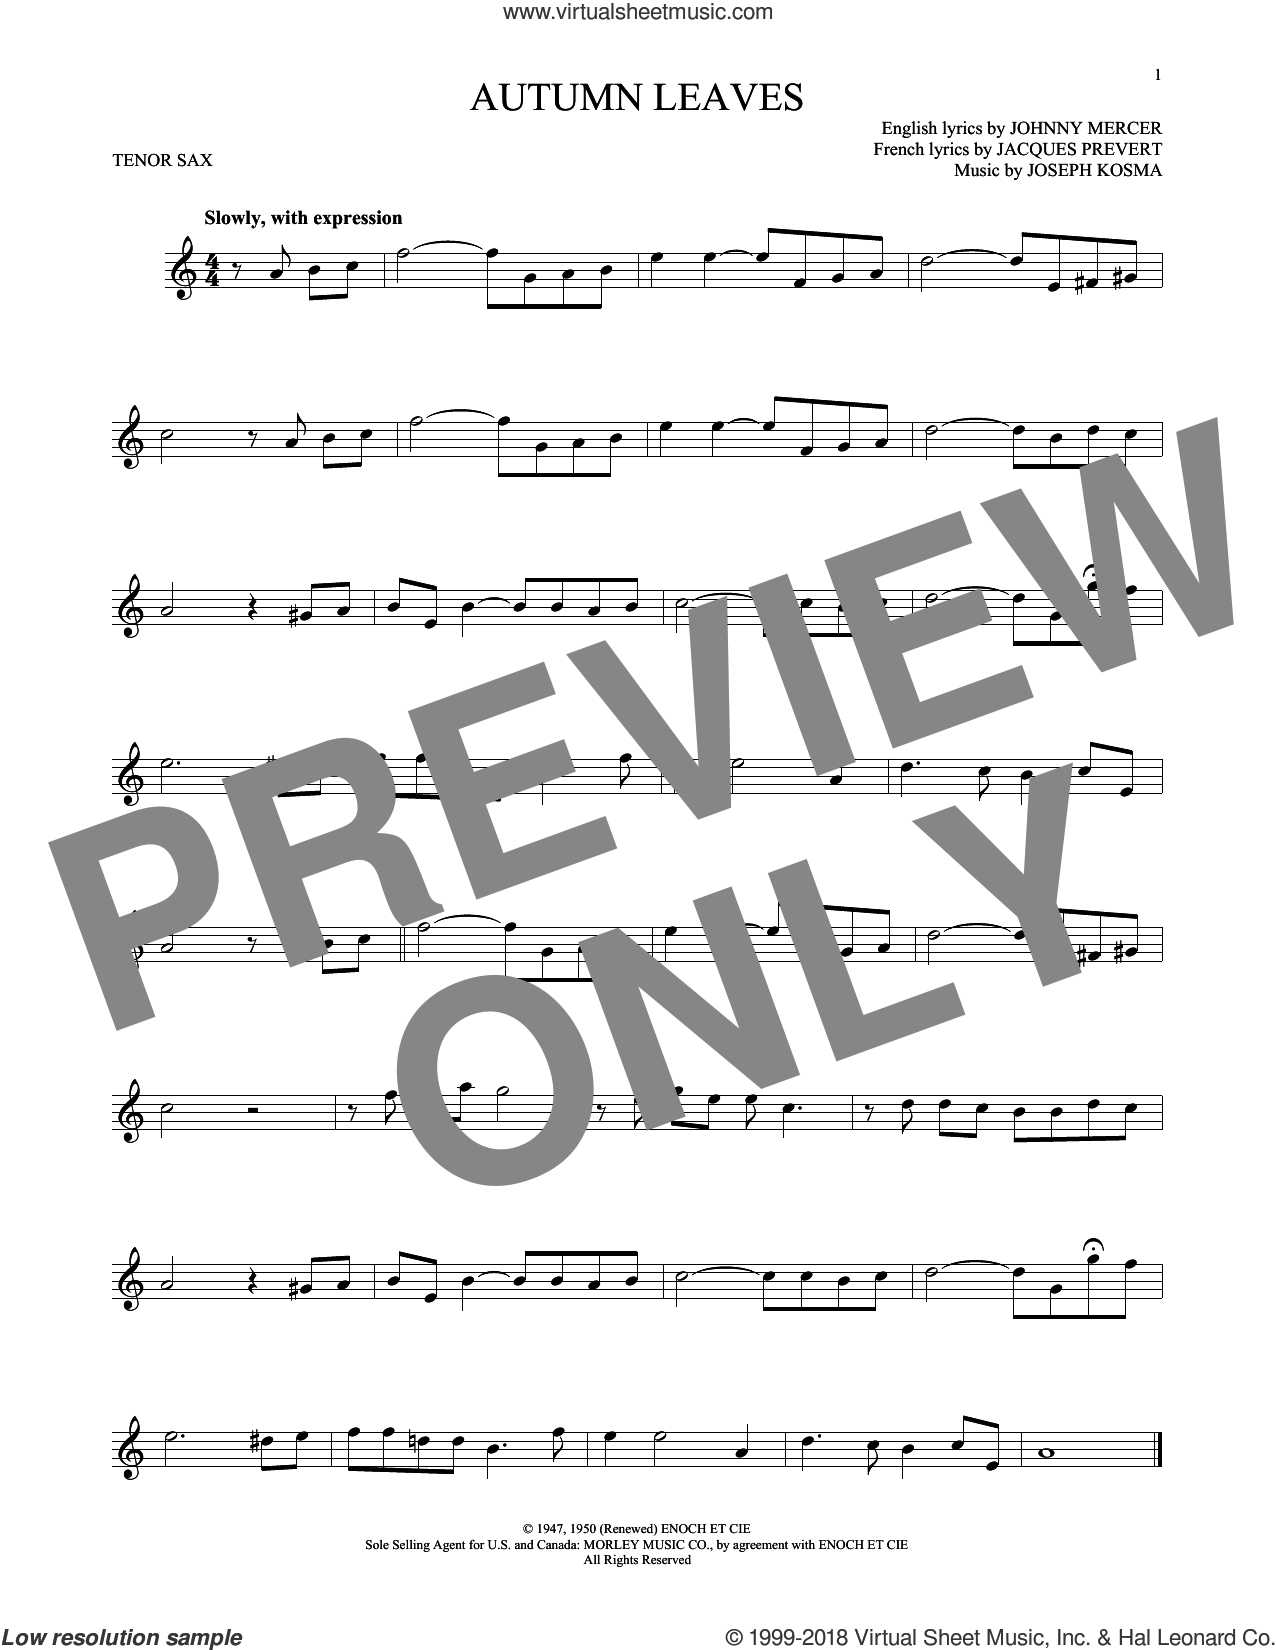 Autumn Leaves sheet music for tenor saxophone solo by Johnny Mercer, Mitch Miller, Roger Williams, Steve Allen & George Cates, Jacques Prevert and Joseph Kosma, intermediate skill level